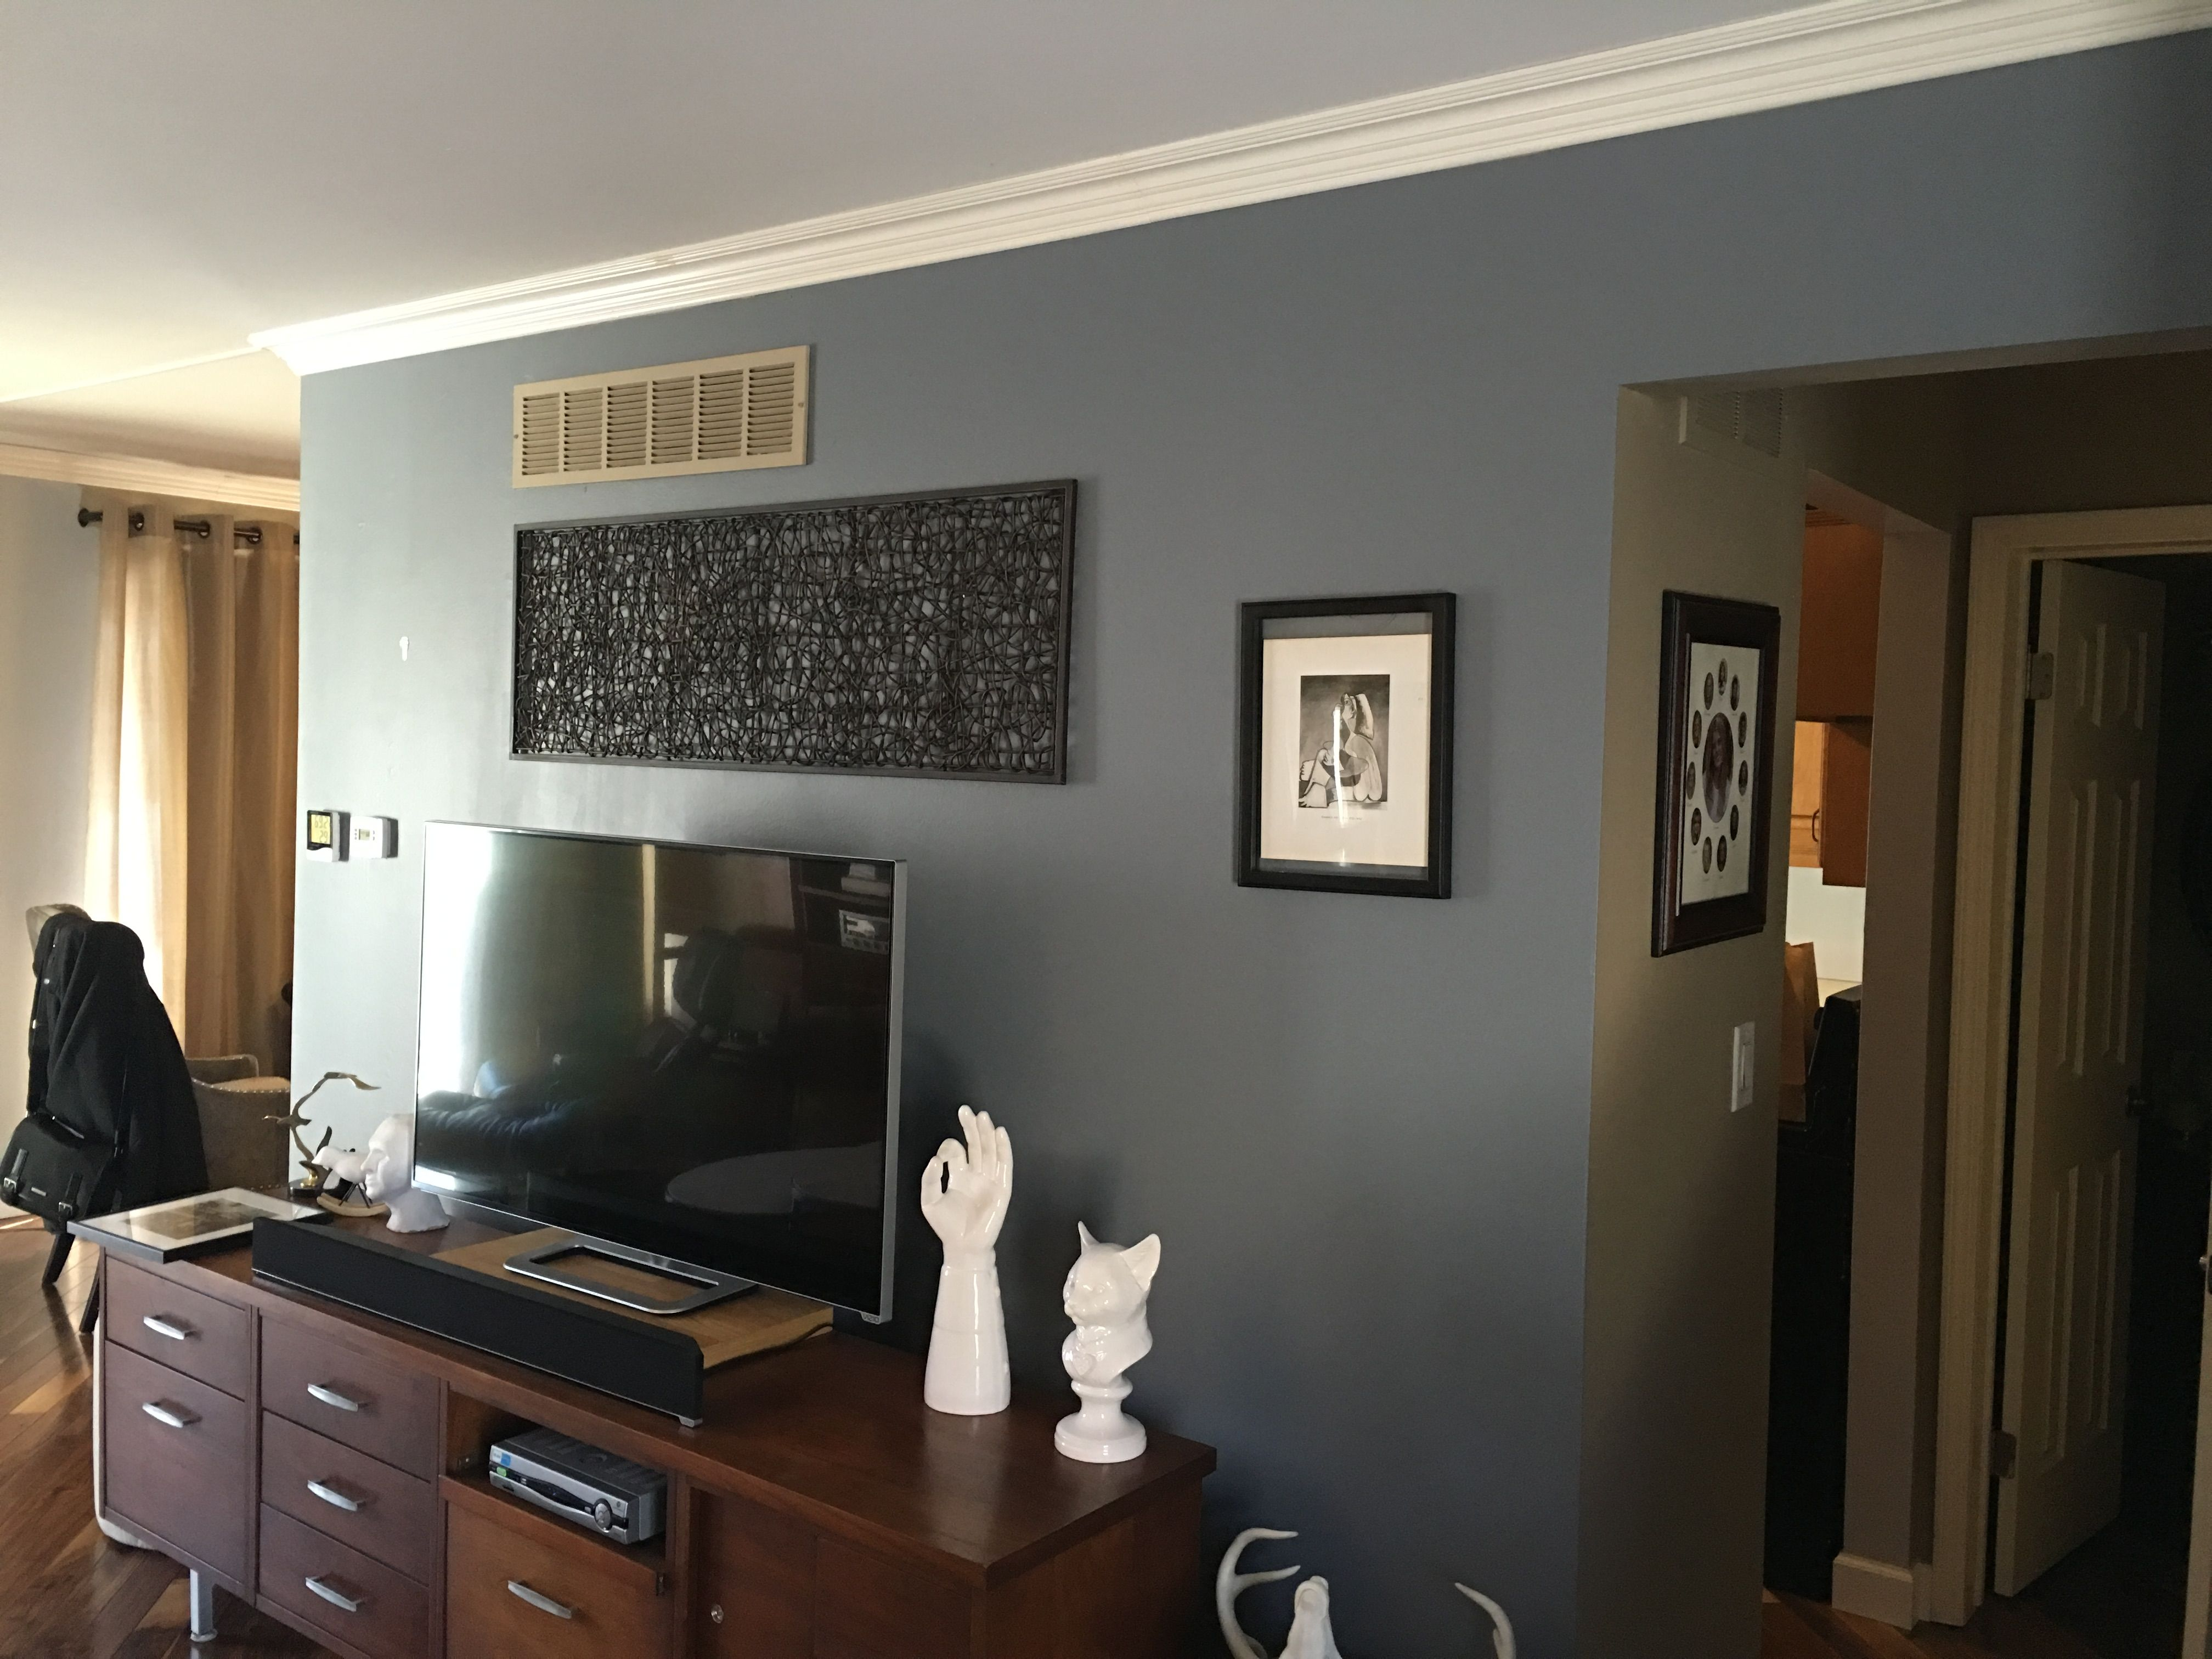 Serious gray sherwin williams i loved this paint color - Sherwin williams interior paint finishes ...